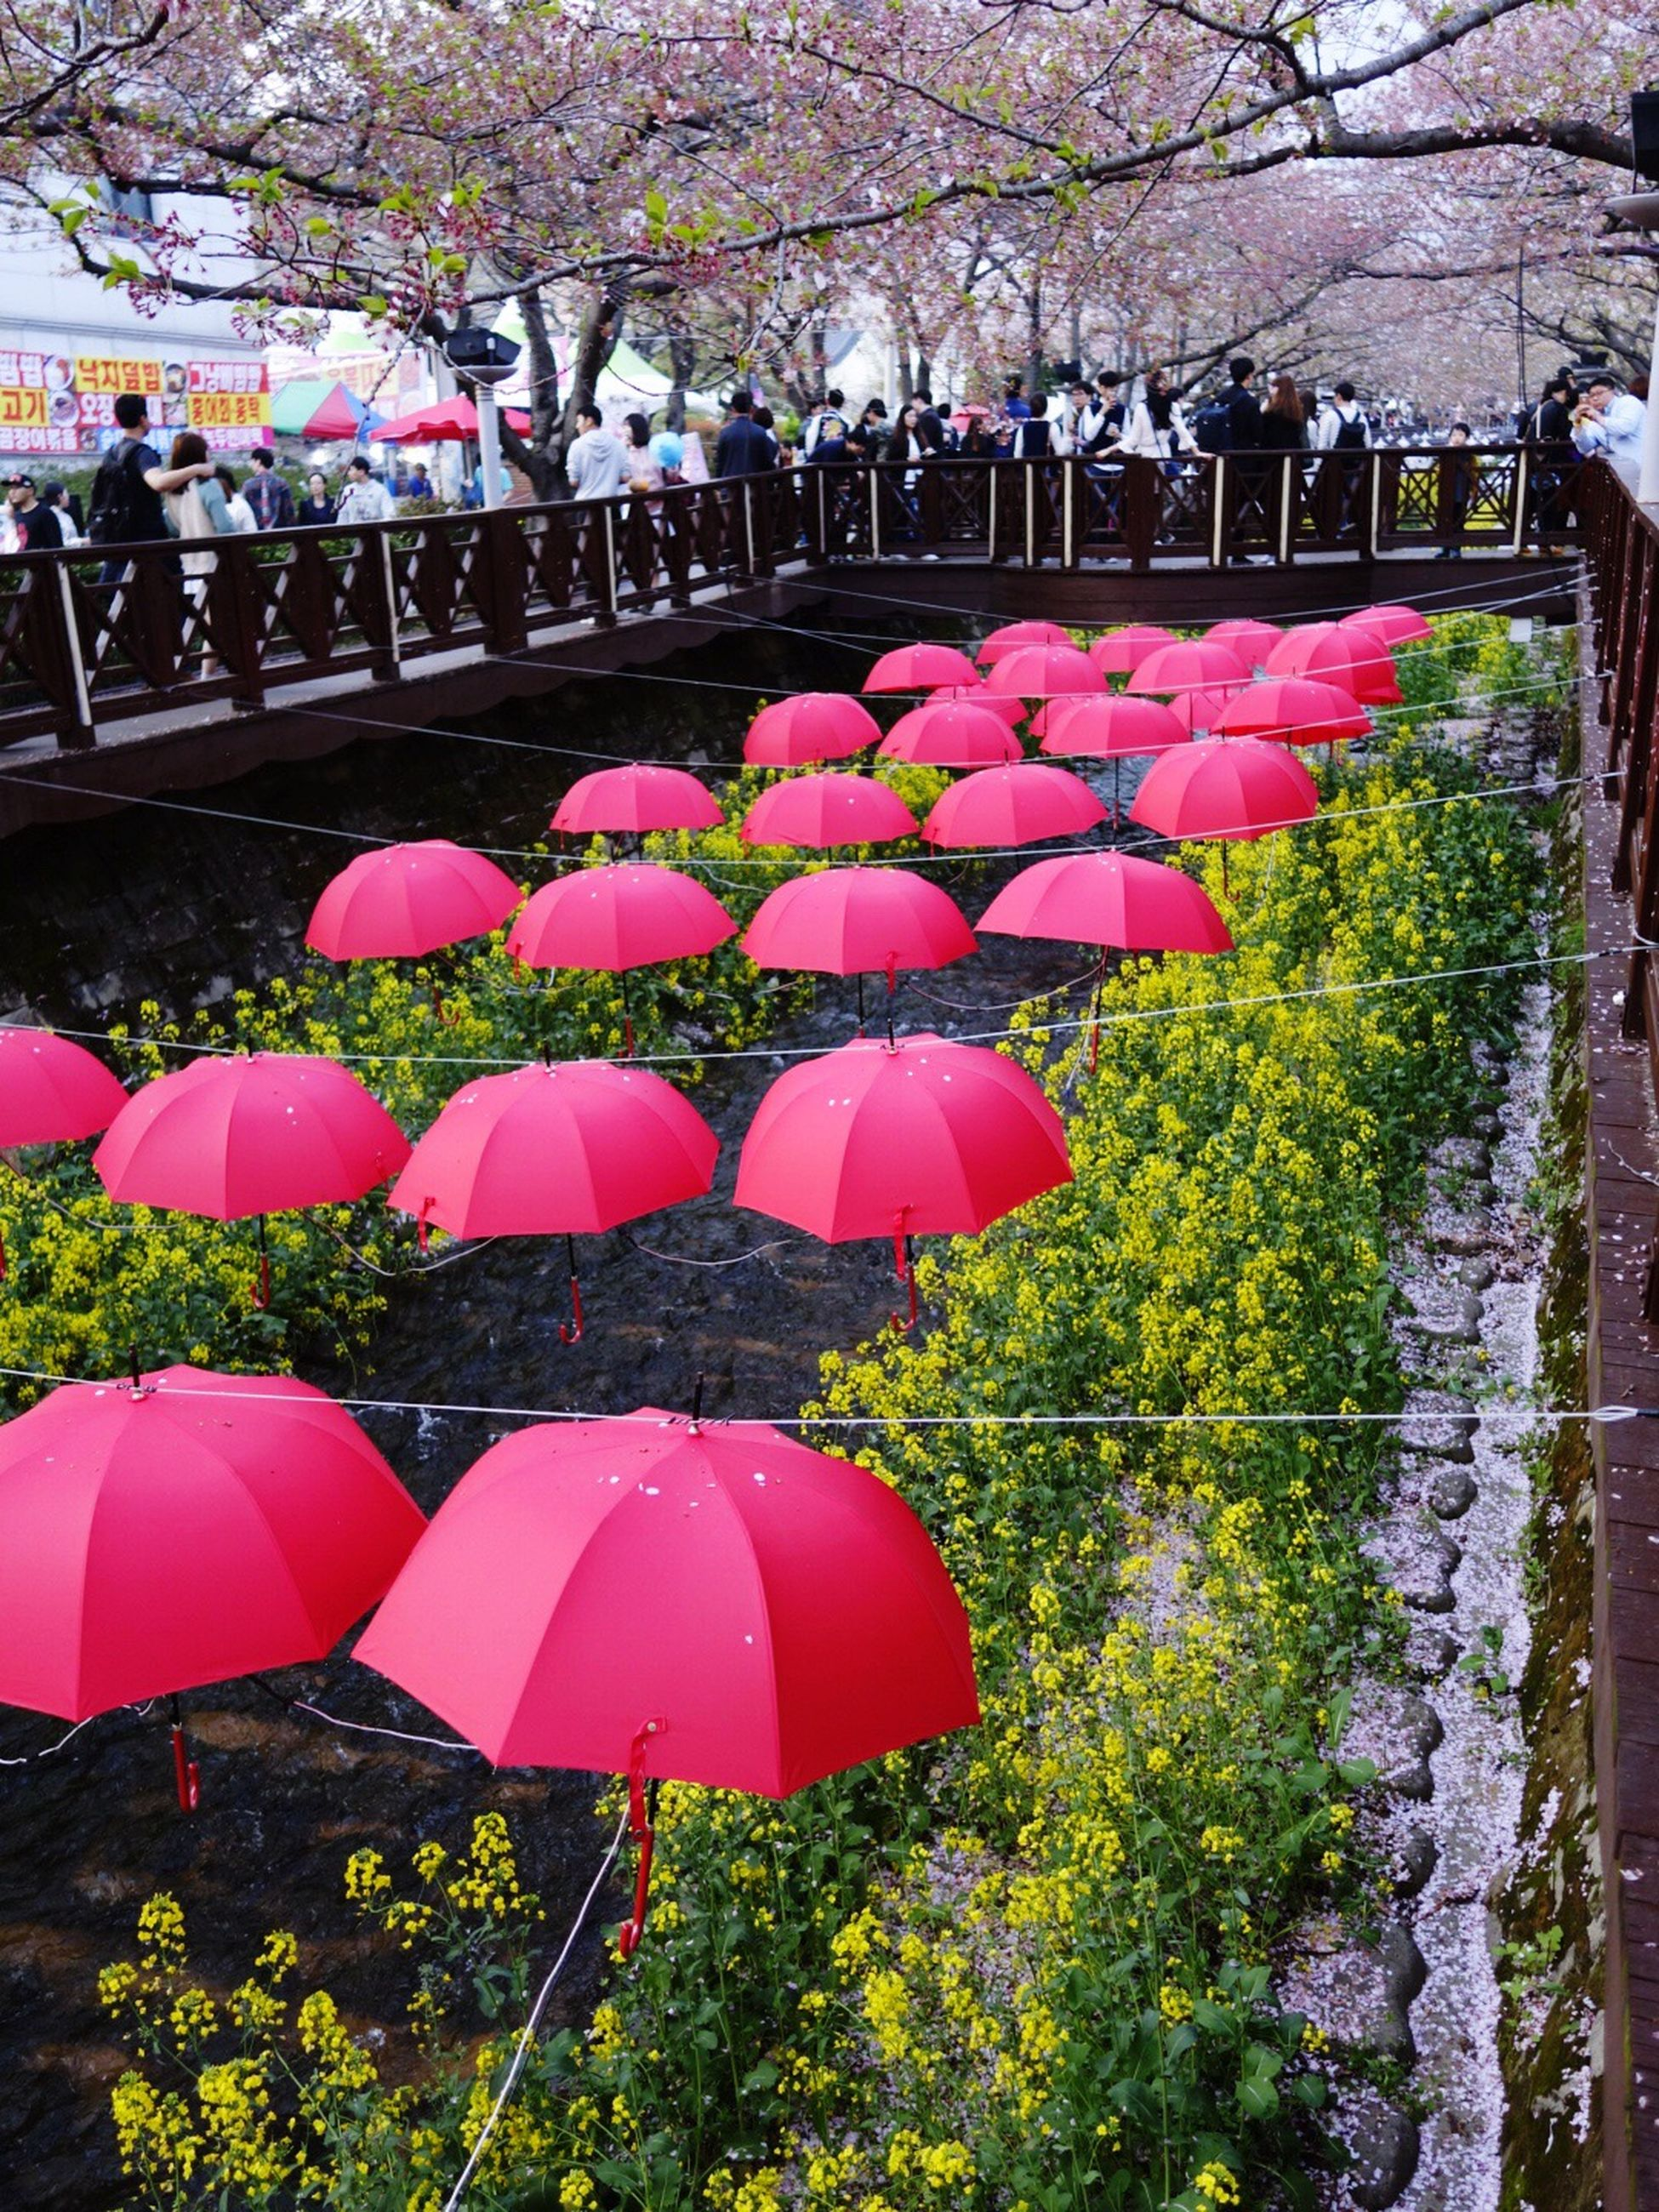 flower, tree, hanging, pink color, built structure, growth, architecture, nature, blossom, day, umbrella, multi colored, fragility, building exterior, outdoors, beauty in nature, decoration, red, park - man made space, springtime